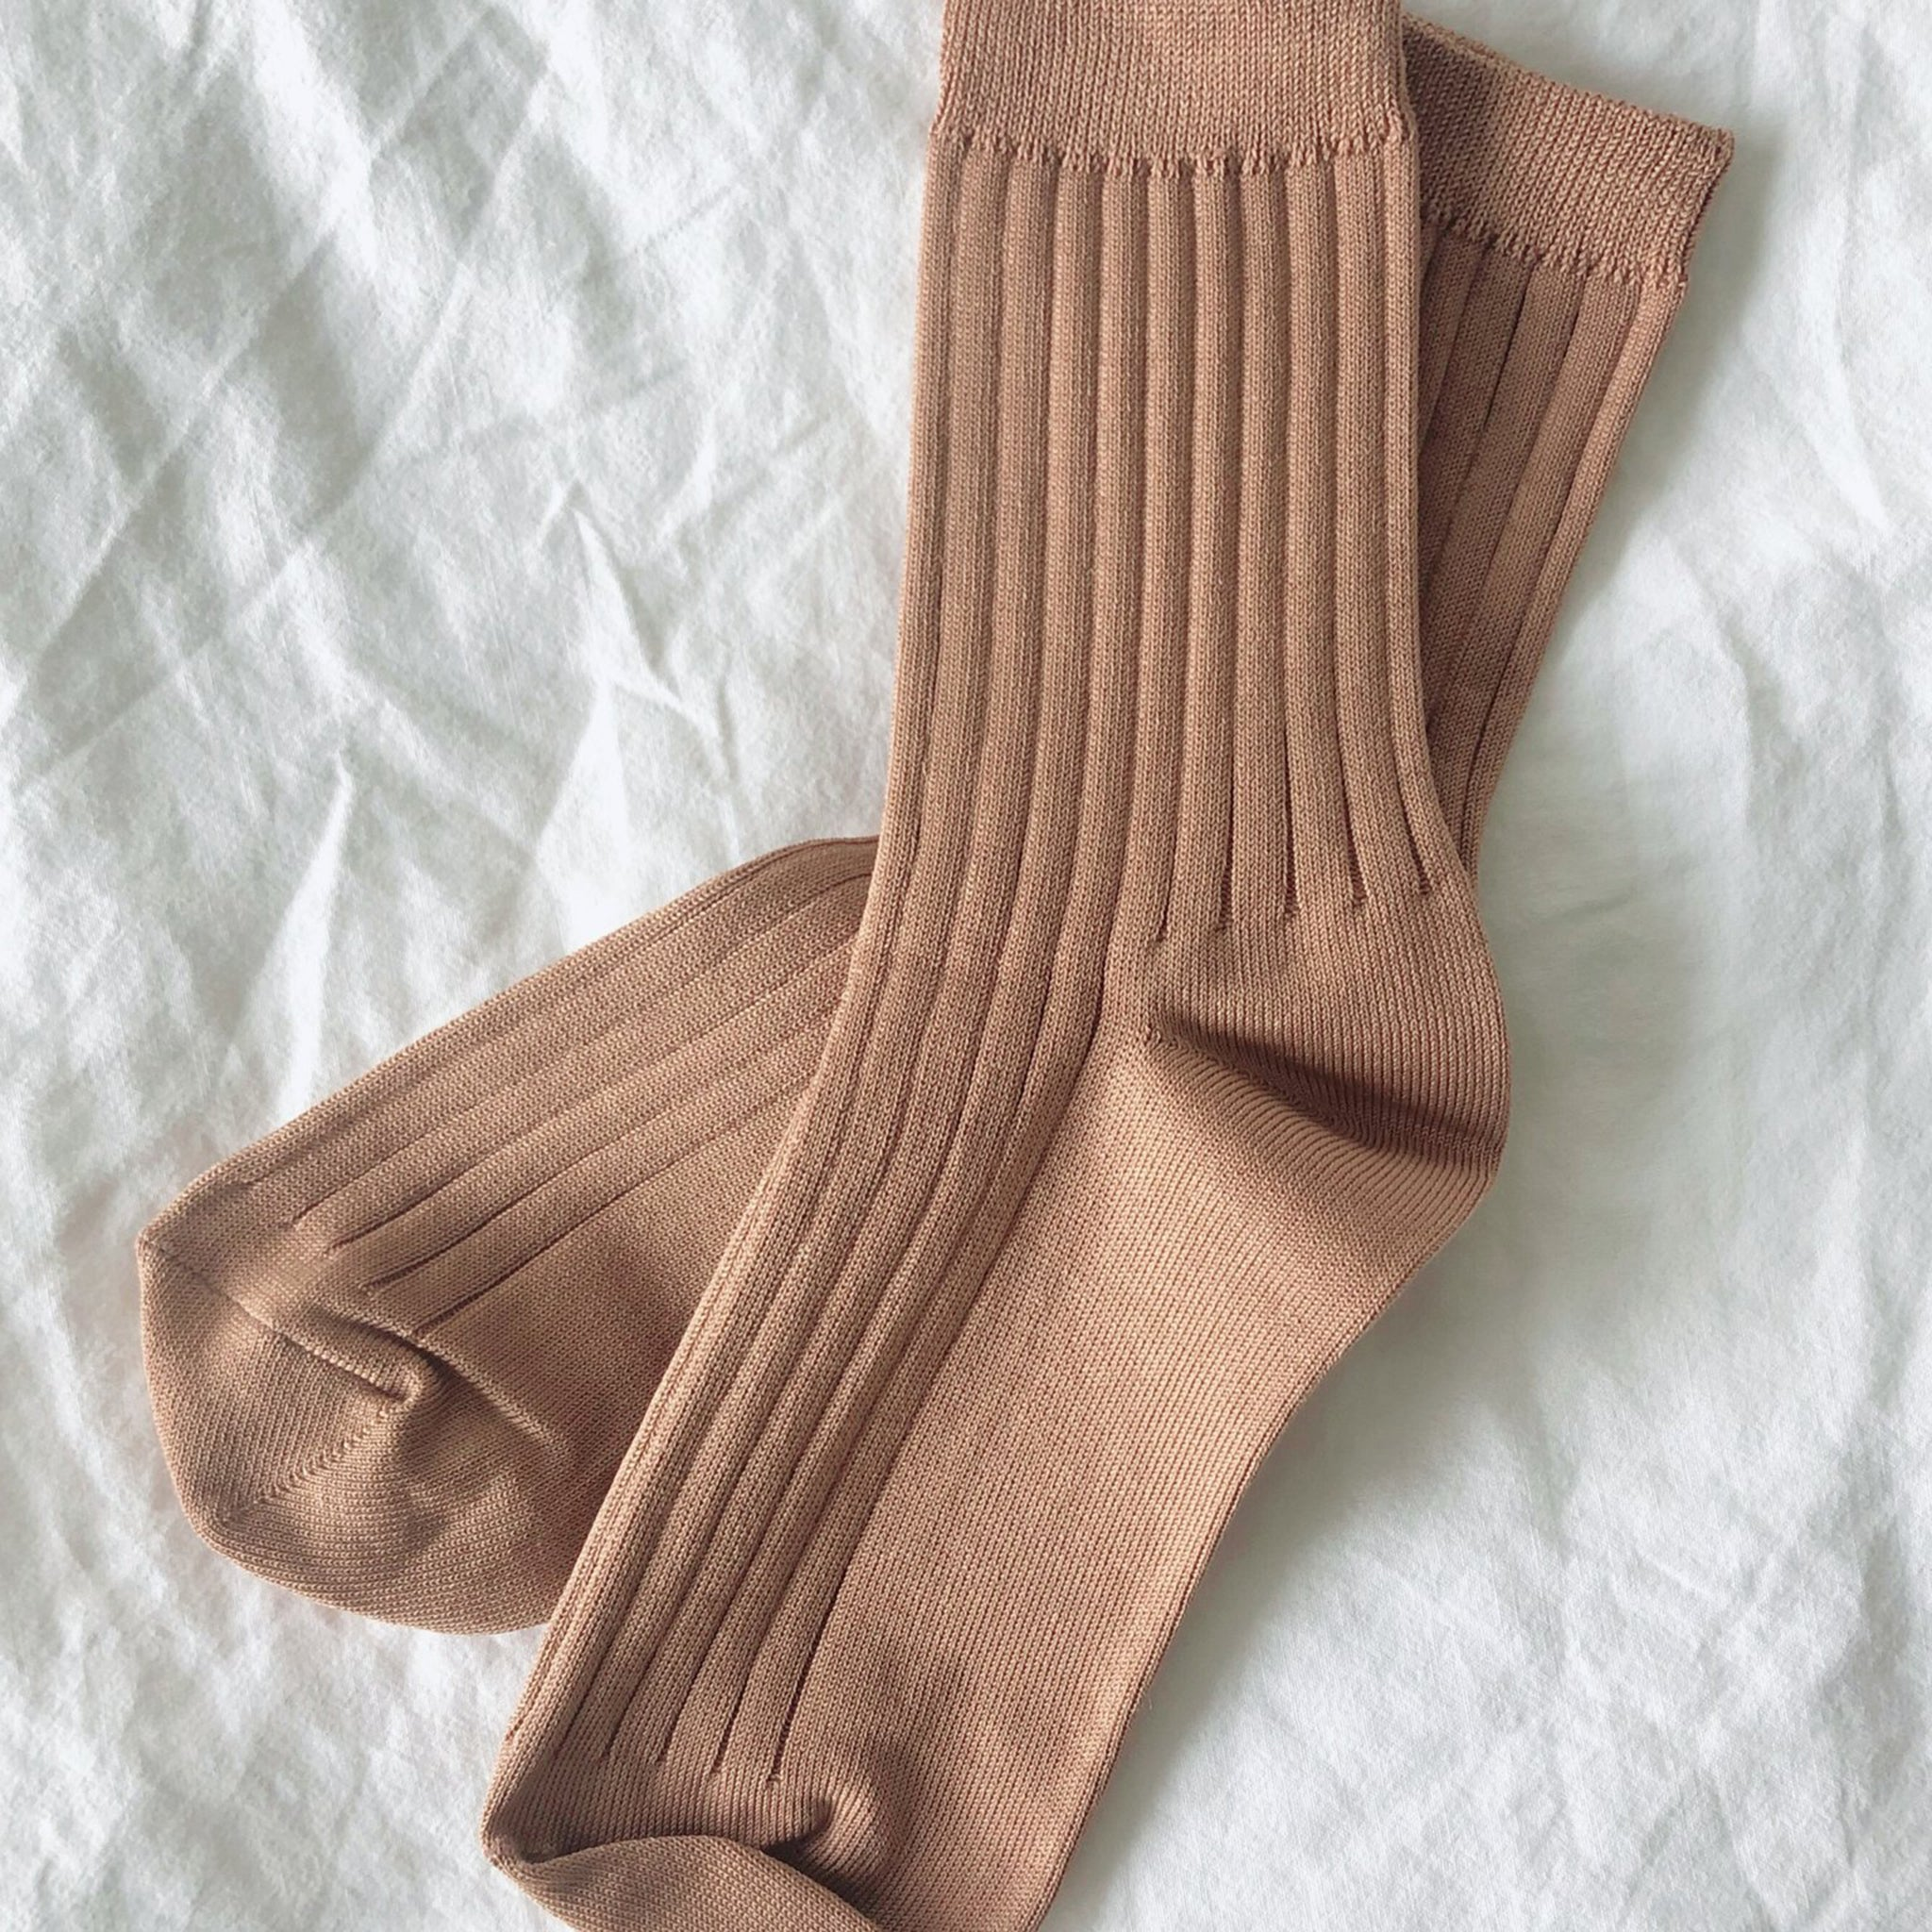 Ribbed Socks - Peanut Butter